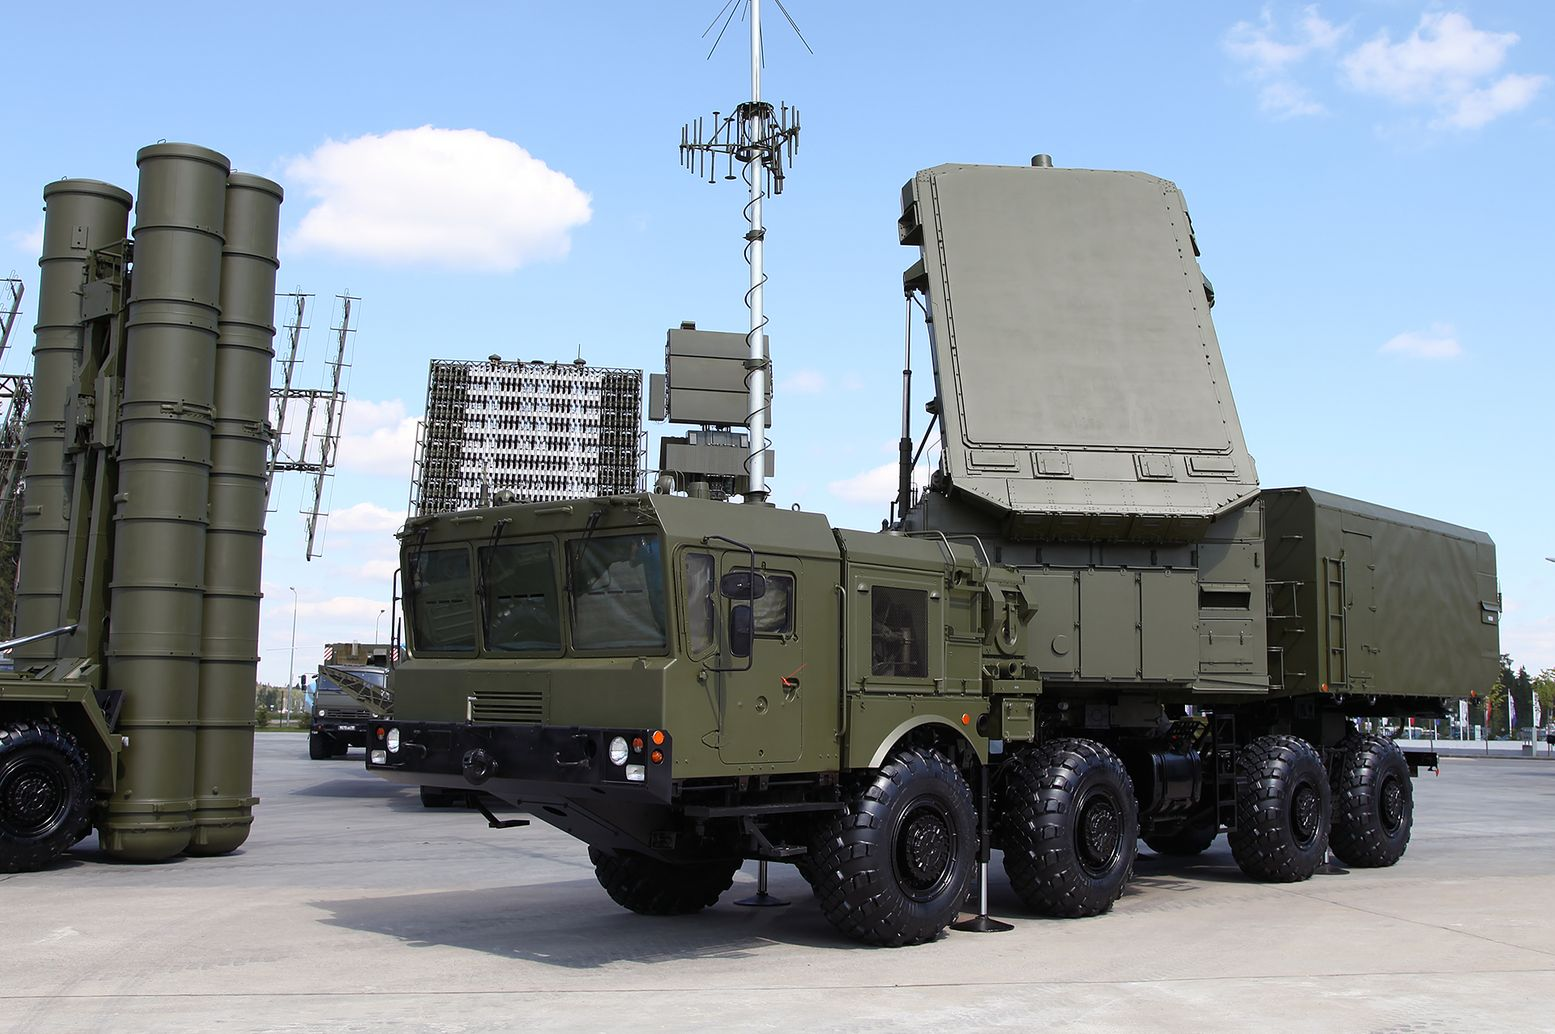 S-400 and More: Why Does Turkey Want Russian Military Technology so